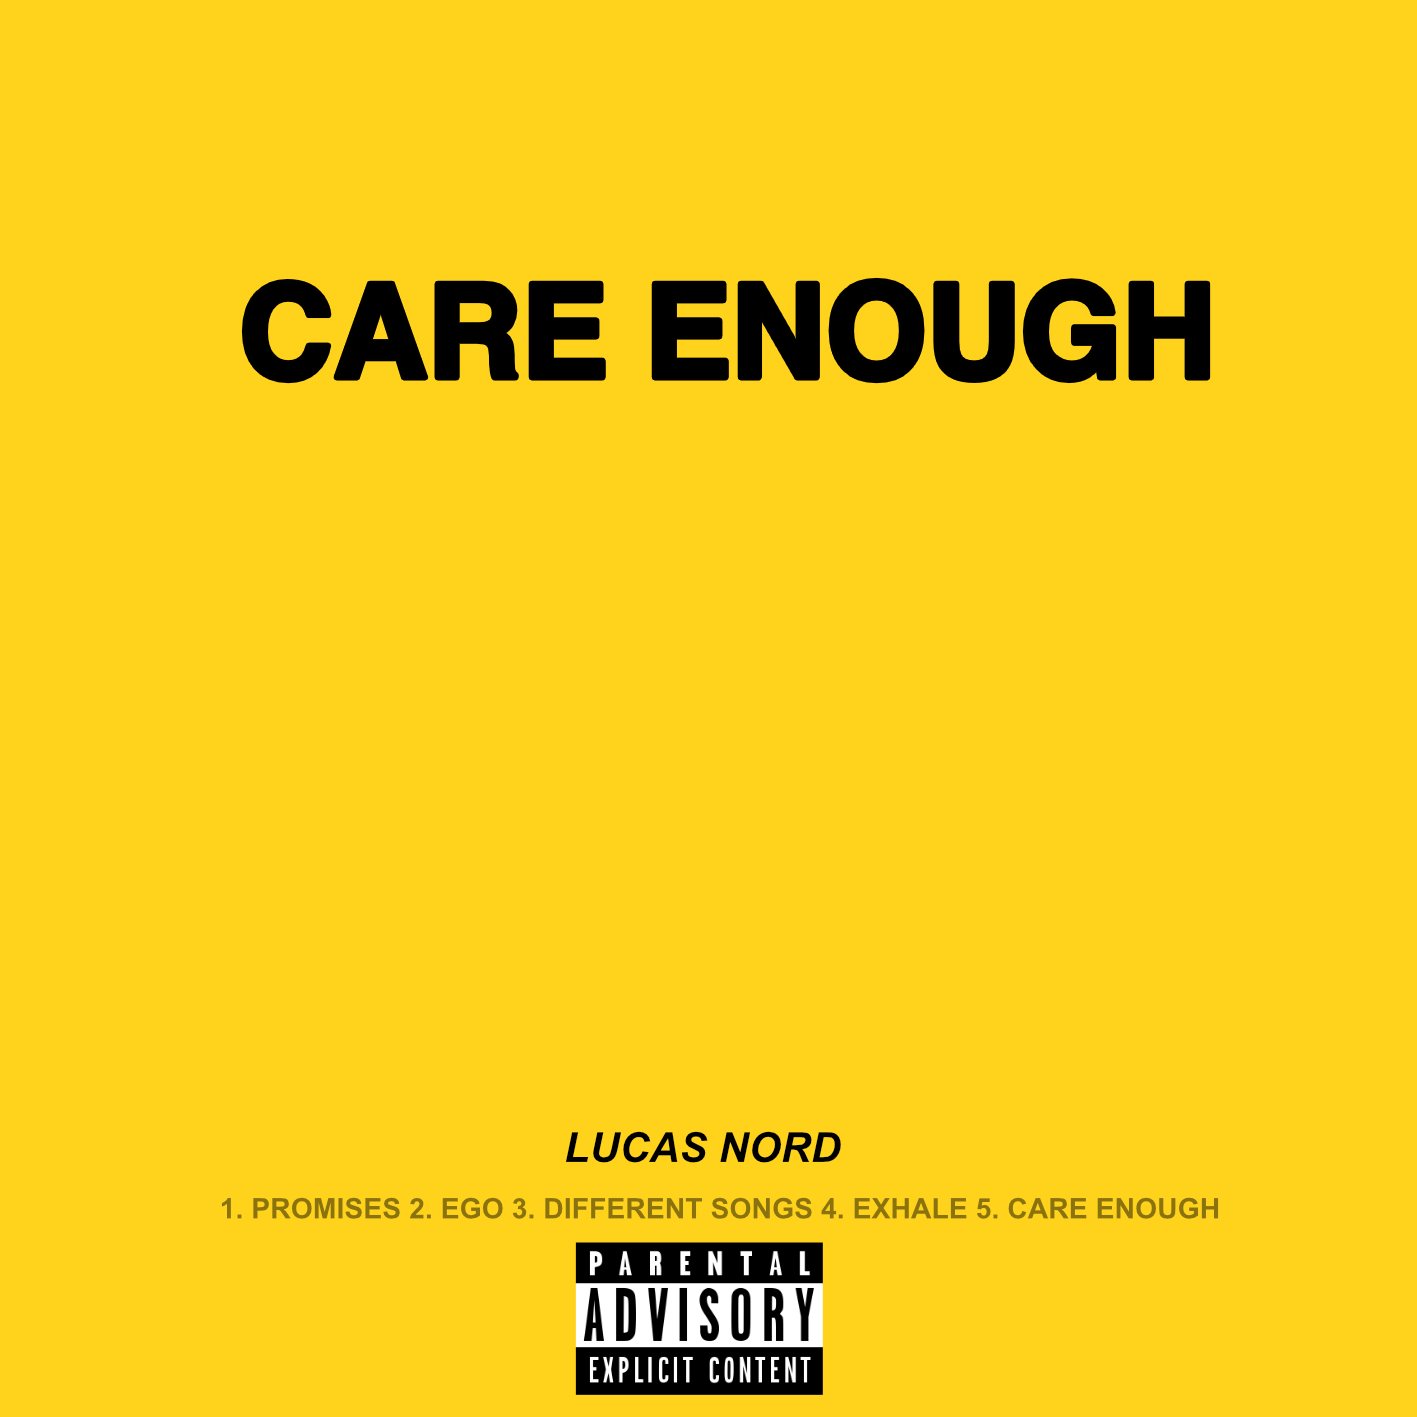 'Care Enough'Out Now! - Lucas Nord's debut single off of his forthcoming EP, 'EGO' (June 1st release) is out now! Click below to Stream / Purchase!